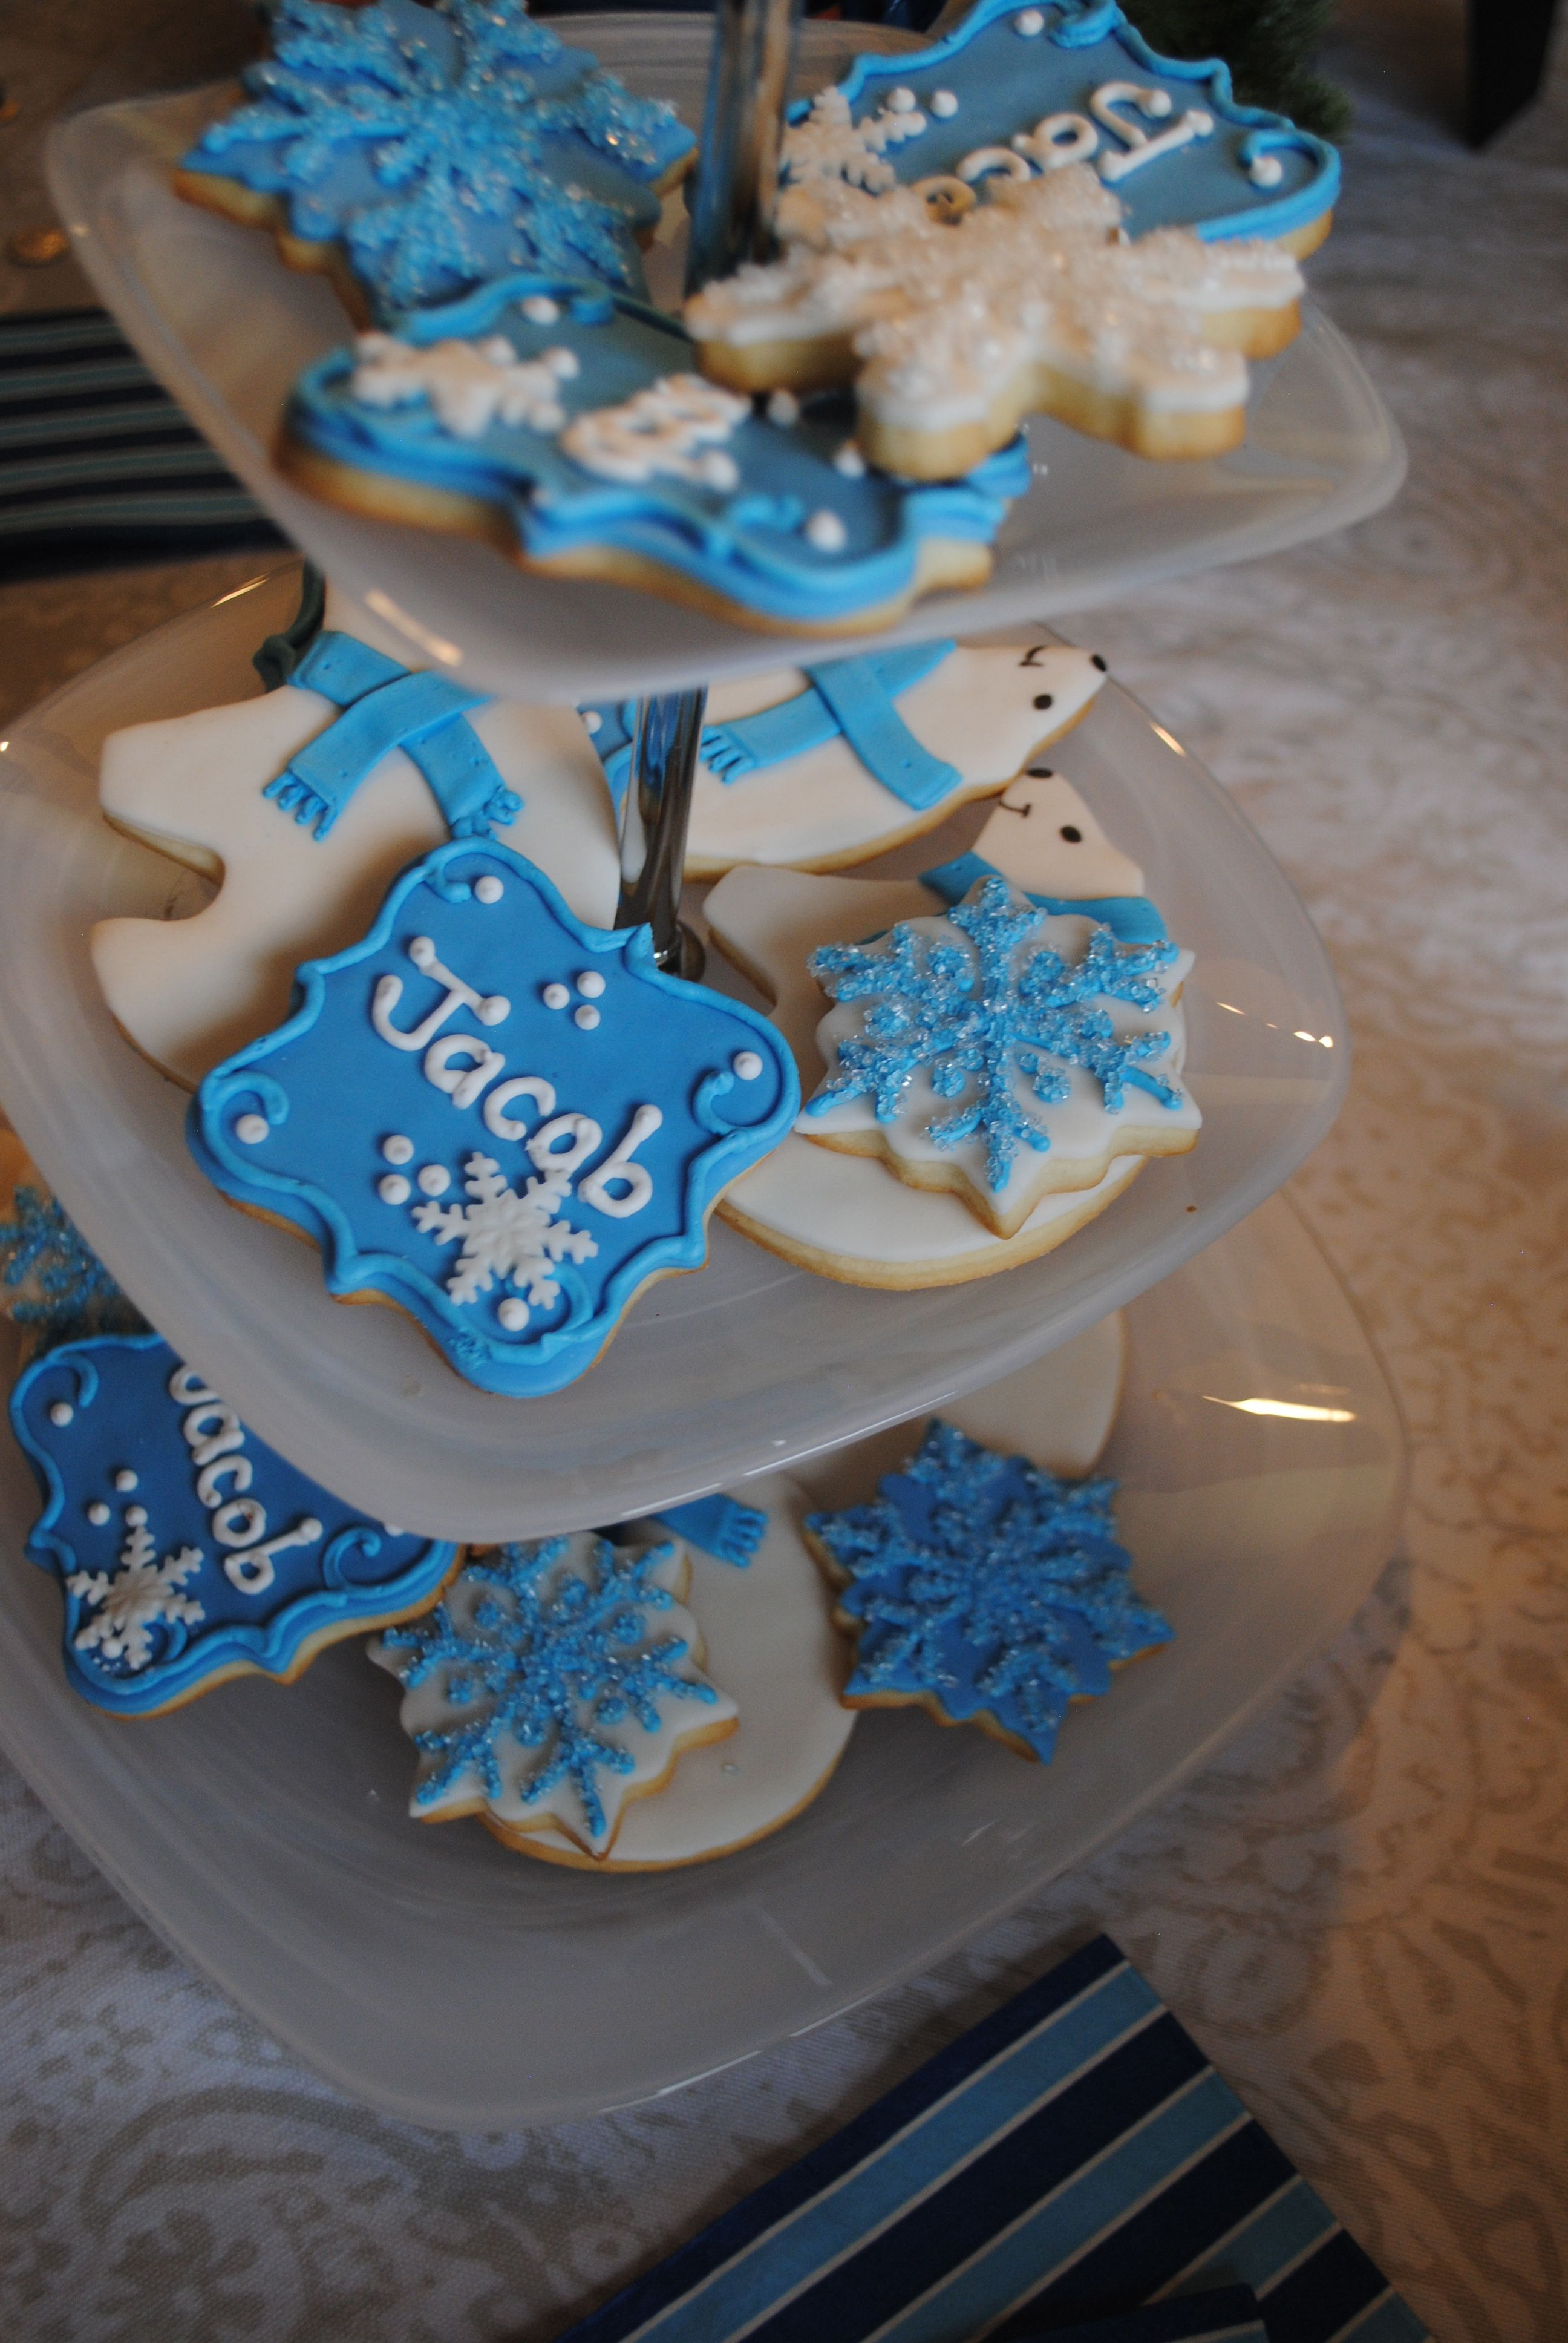 Jacobs Winter One Derland 1St Birthday Party #Yyc #Christmascookies #Firstbirthdayparty #Winteronederland